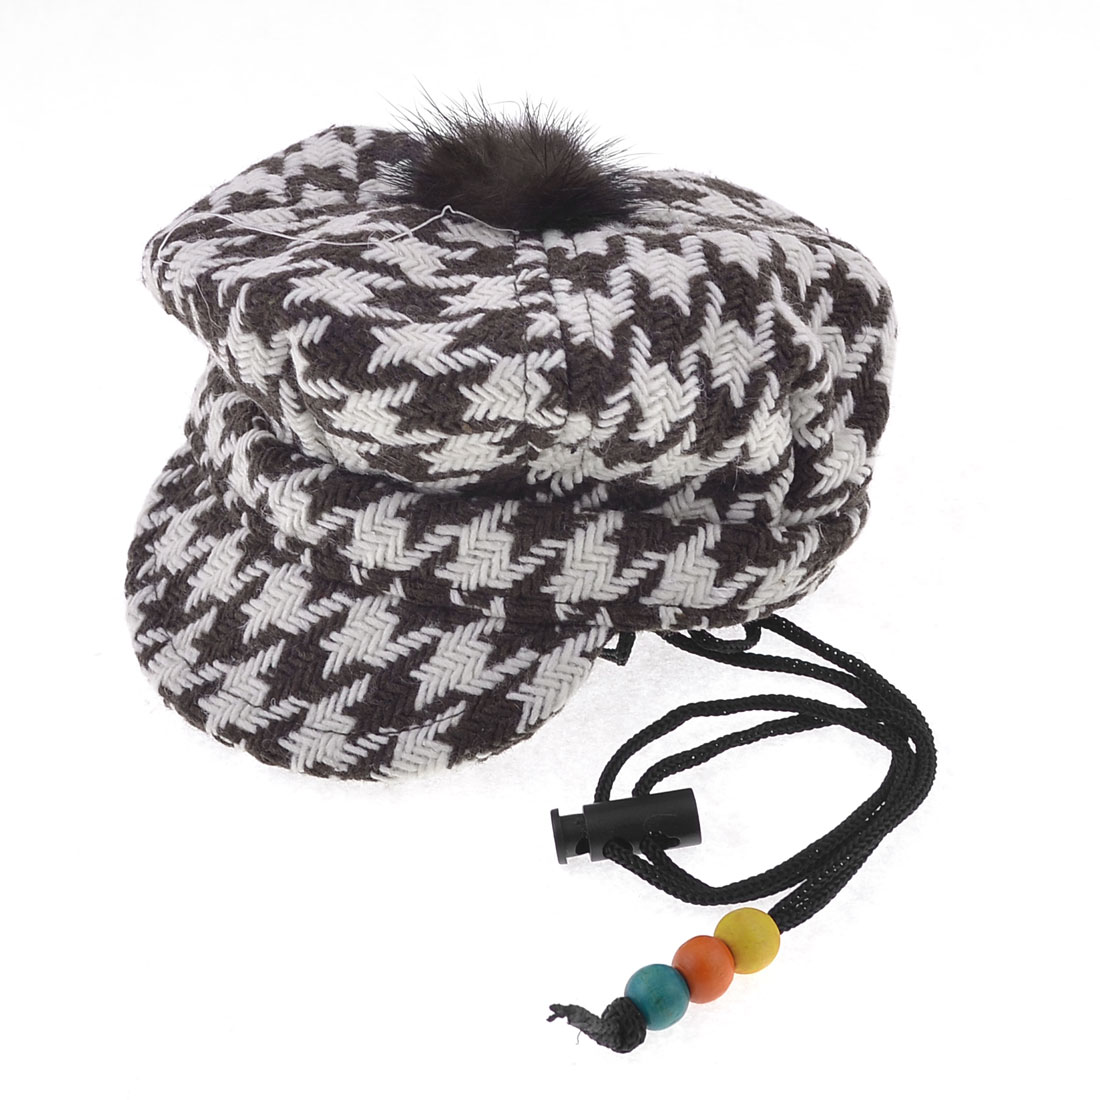 Size L Winter Warm Crochet Knitted Houndstooth Print Hat Cap Brown White for Pet Dog Puppy